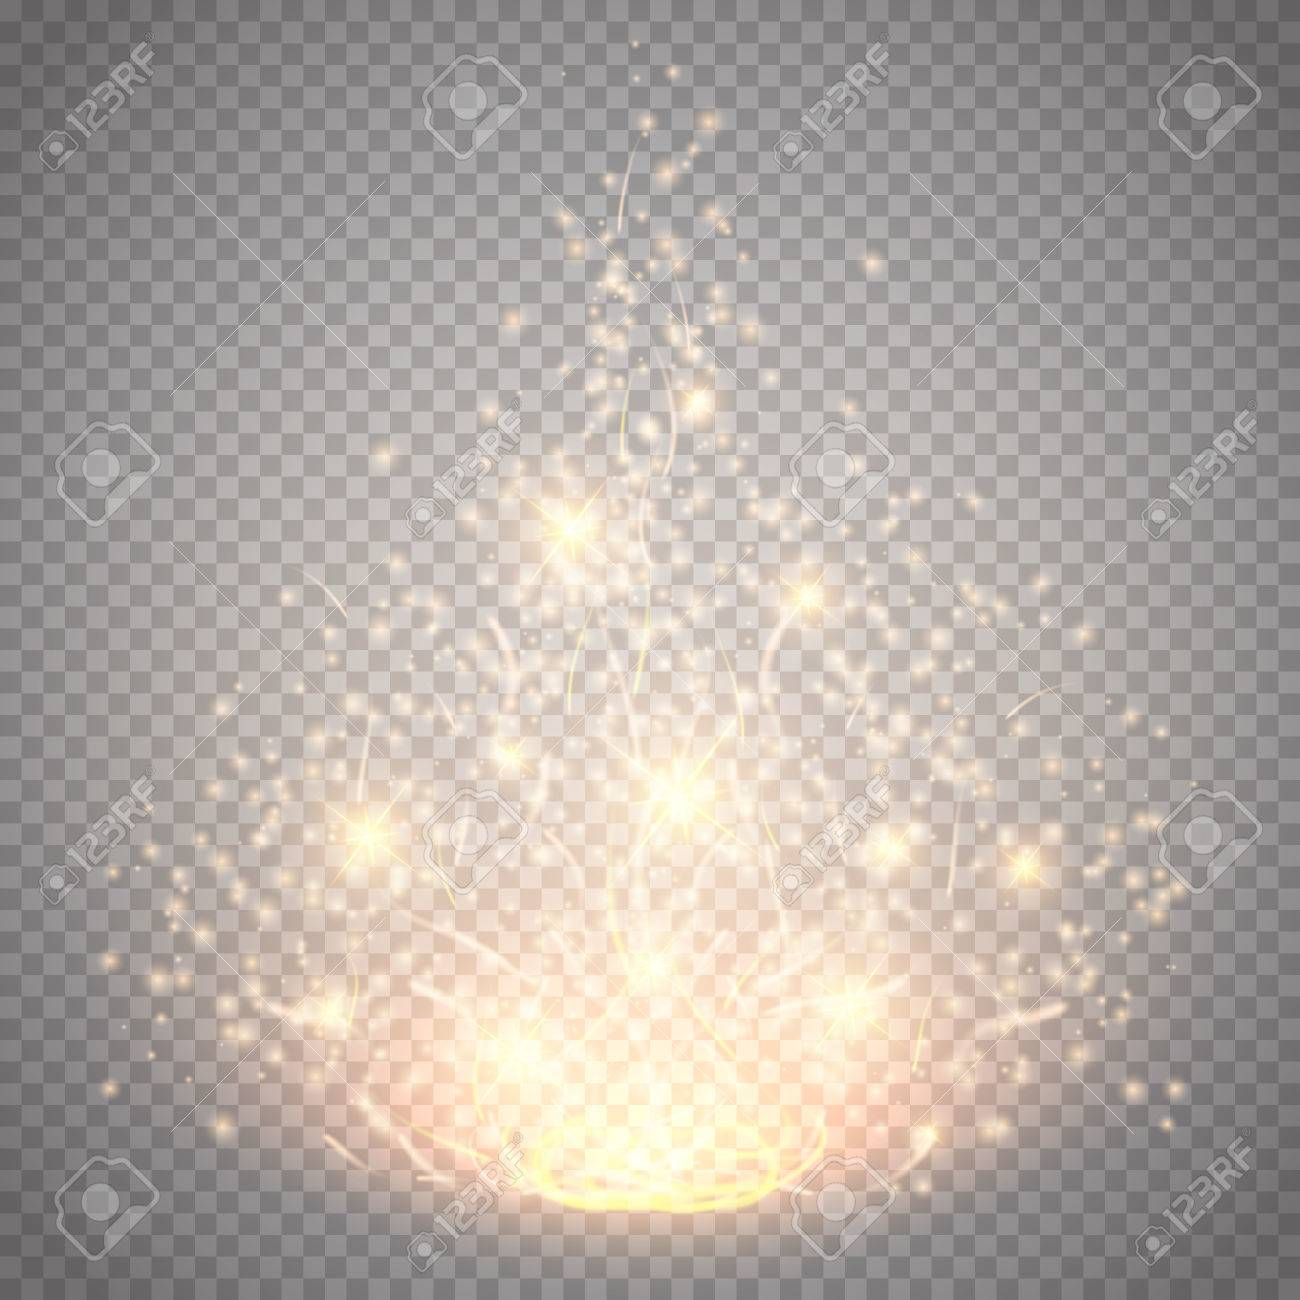 Magic light vector effect. Glow special effect light, flare, star and burst. Isolated spark. Vector illustration - 55755708